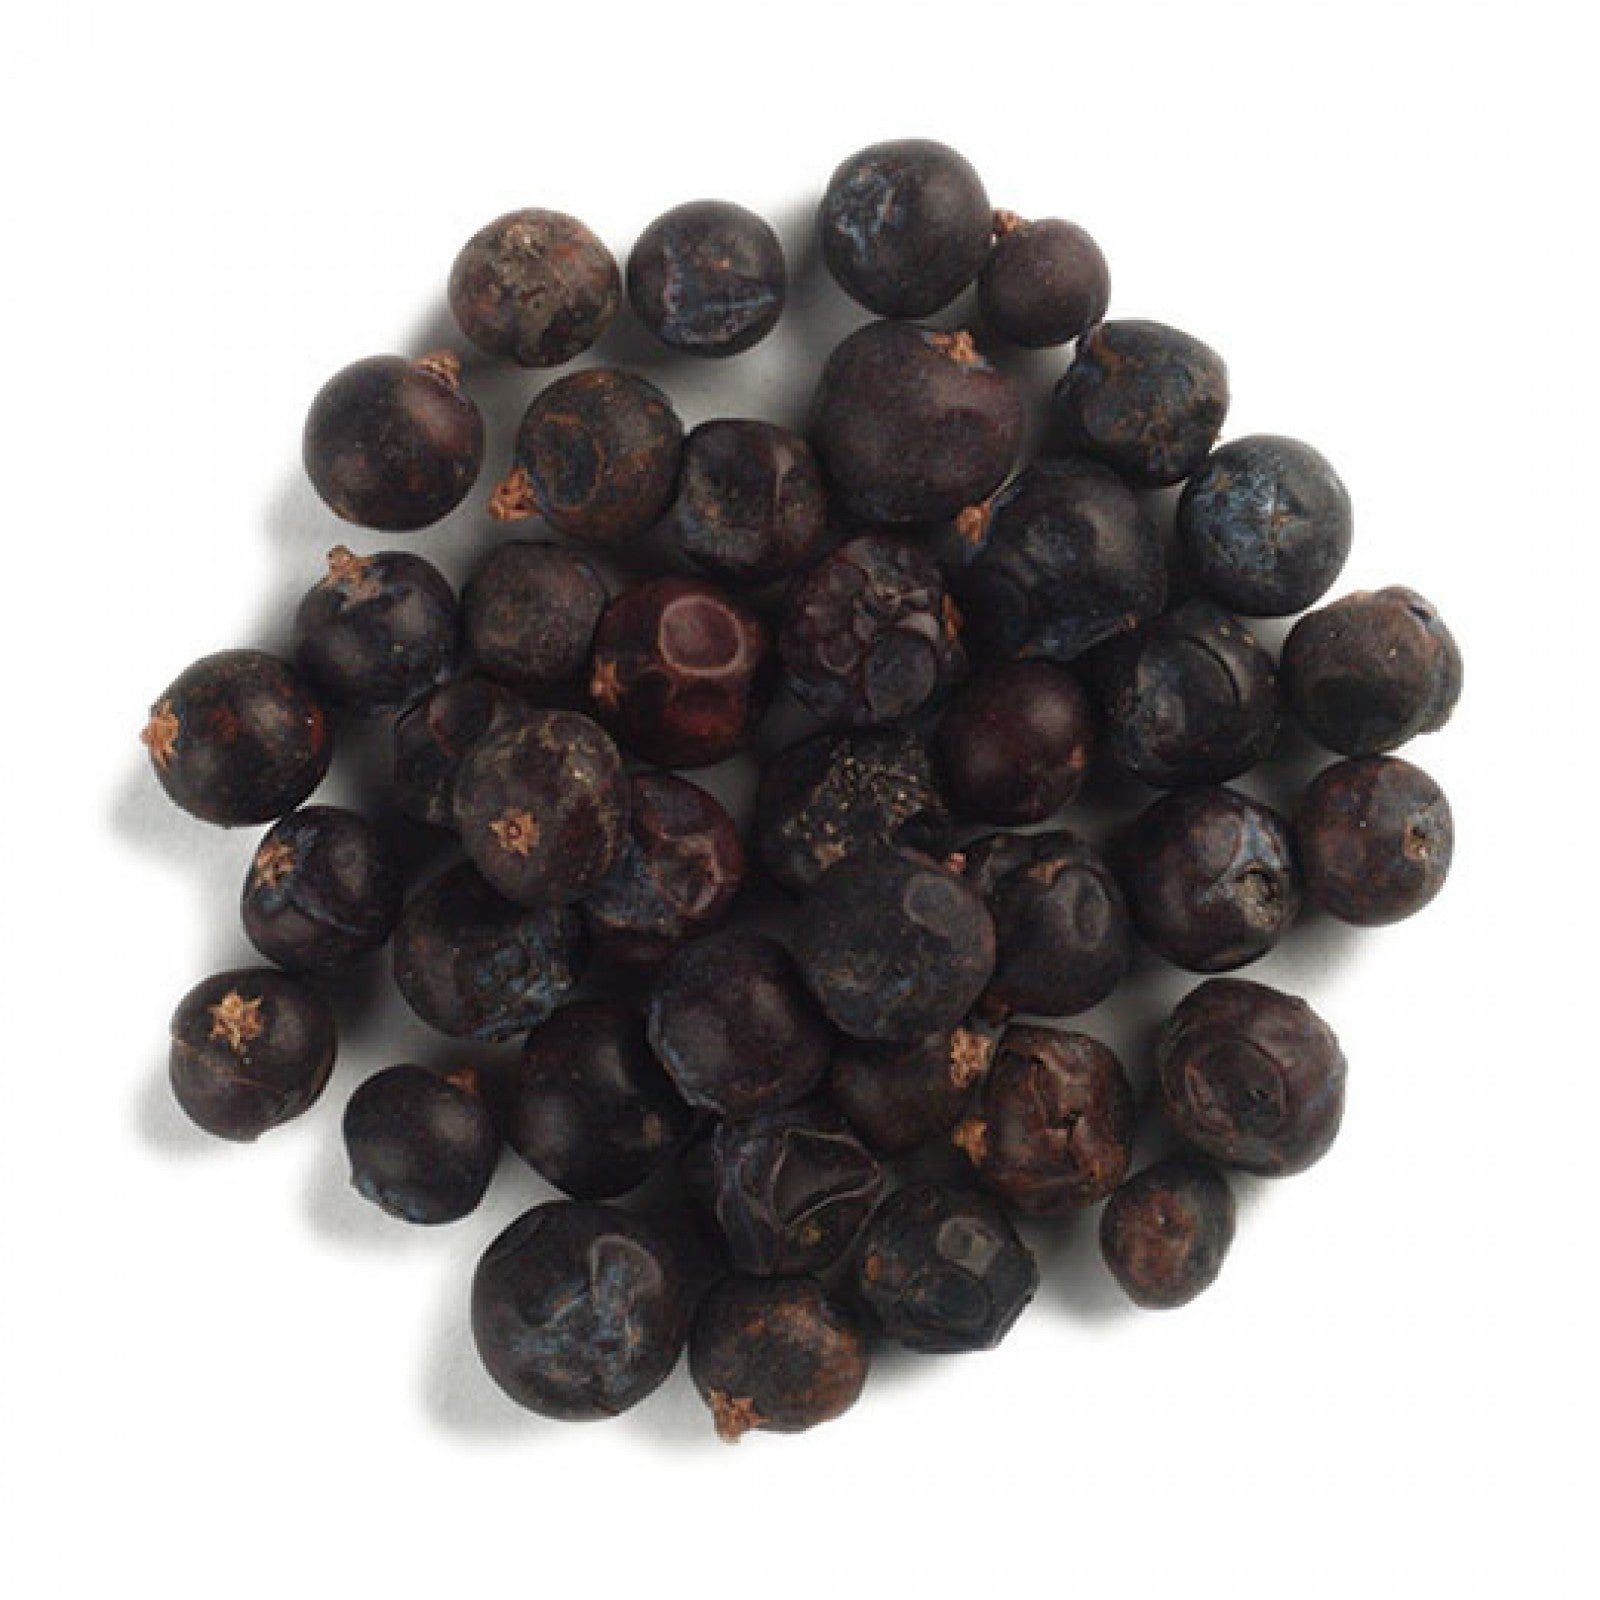 Frontier Organic Whole Juniper Berries, 1 lb